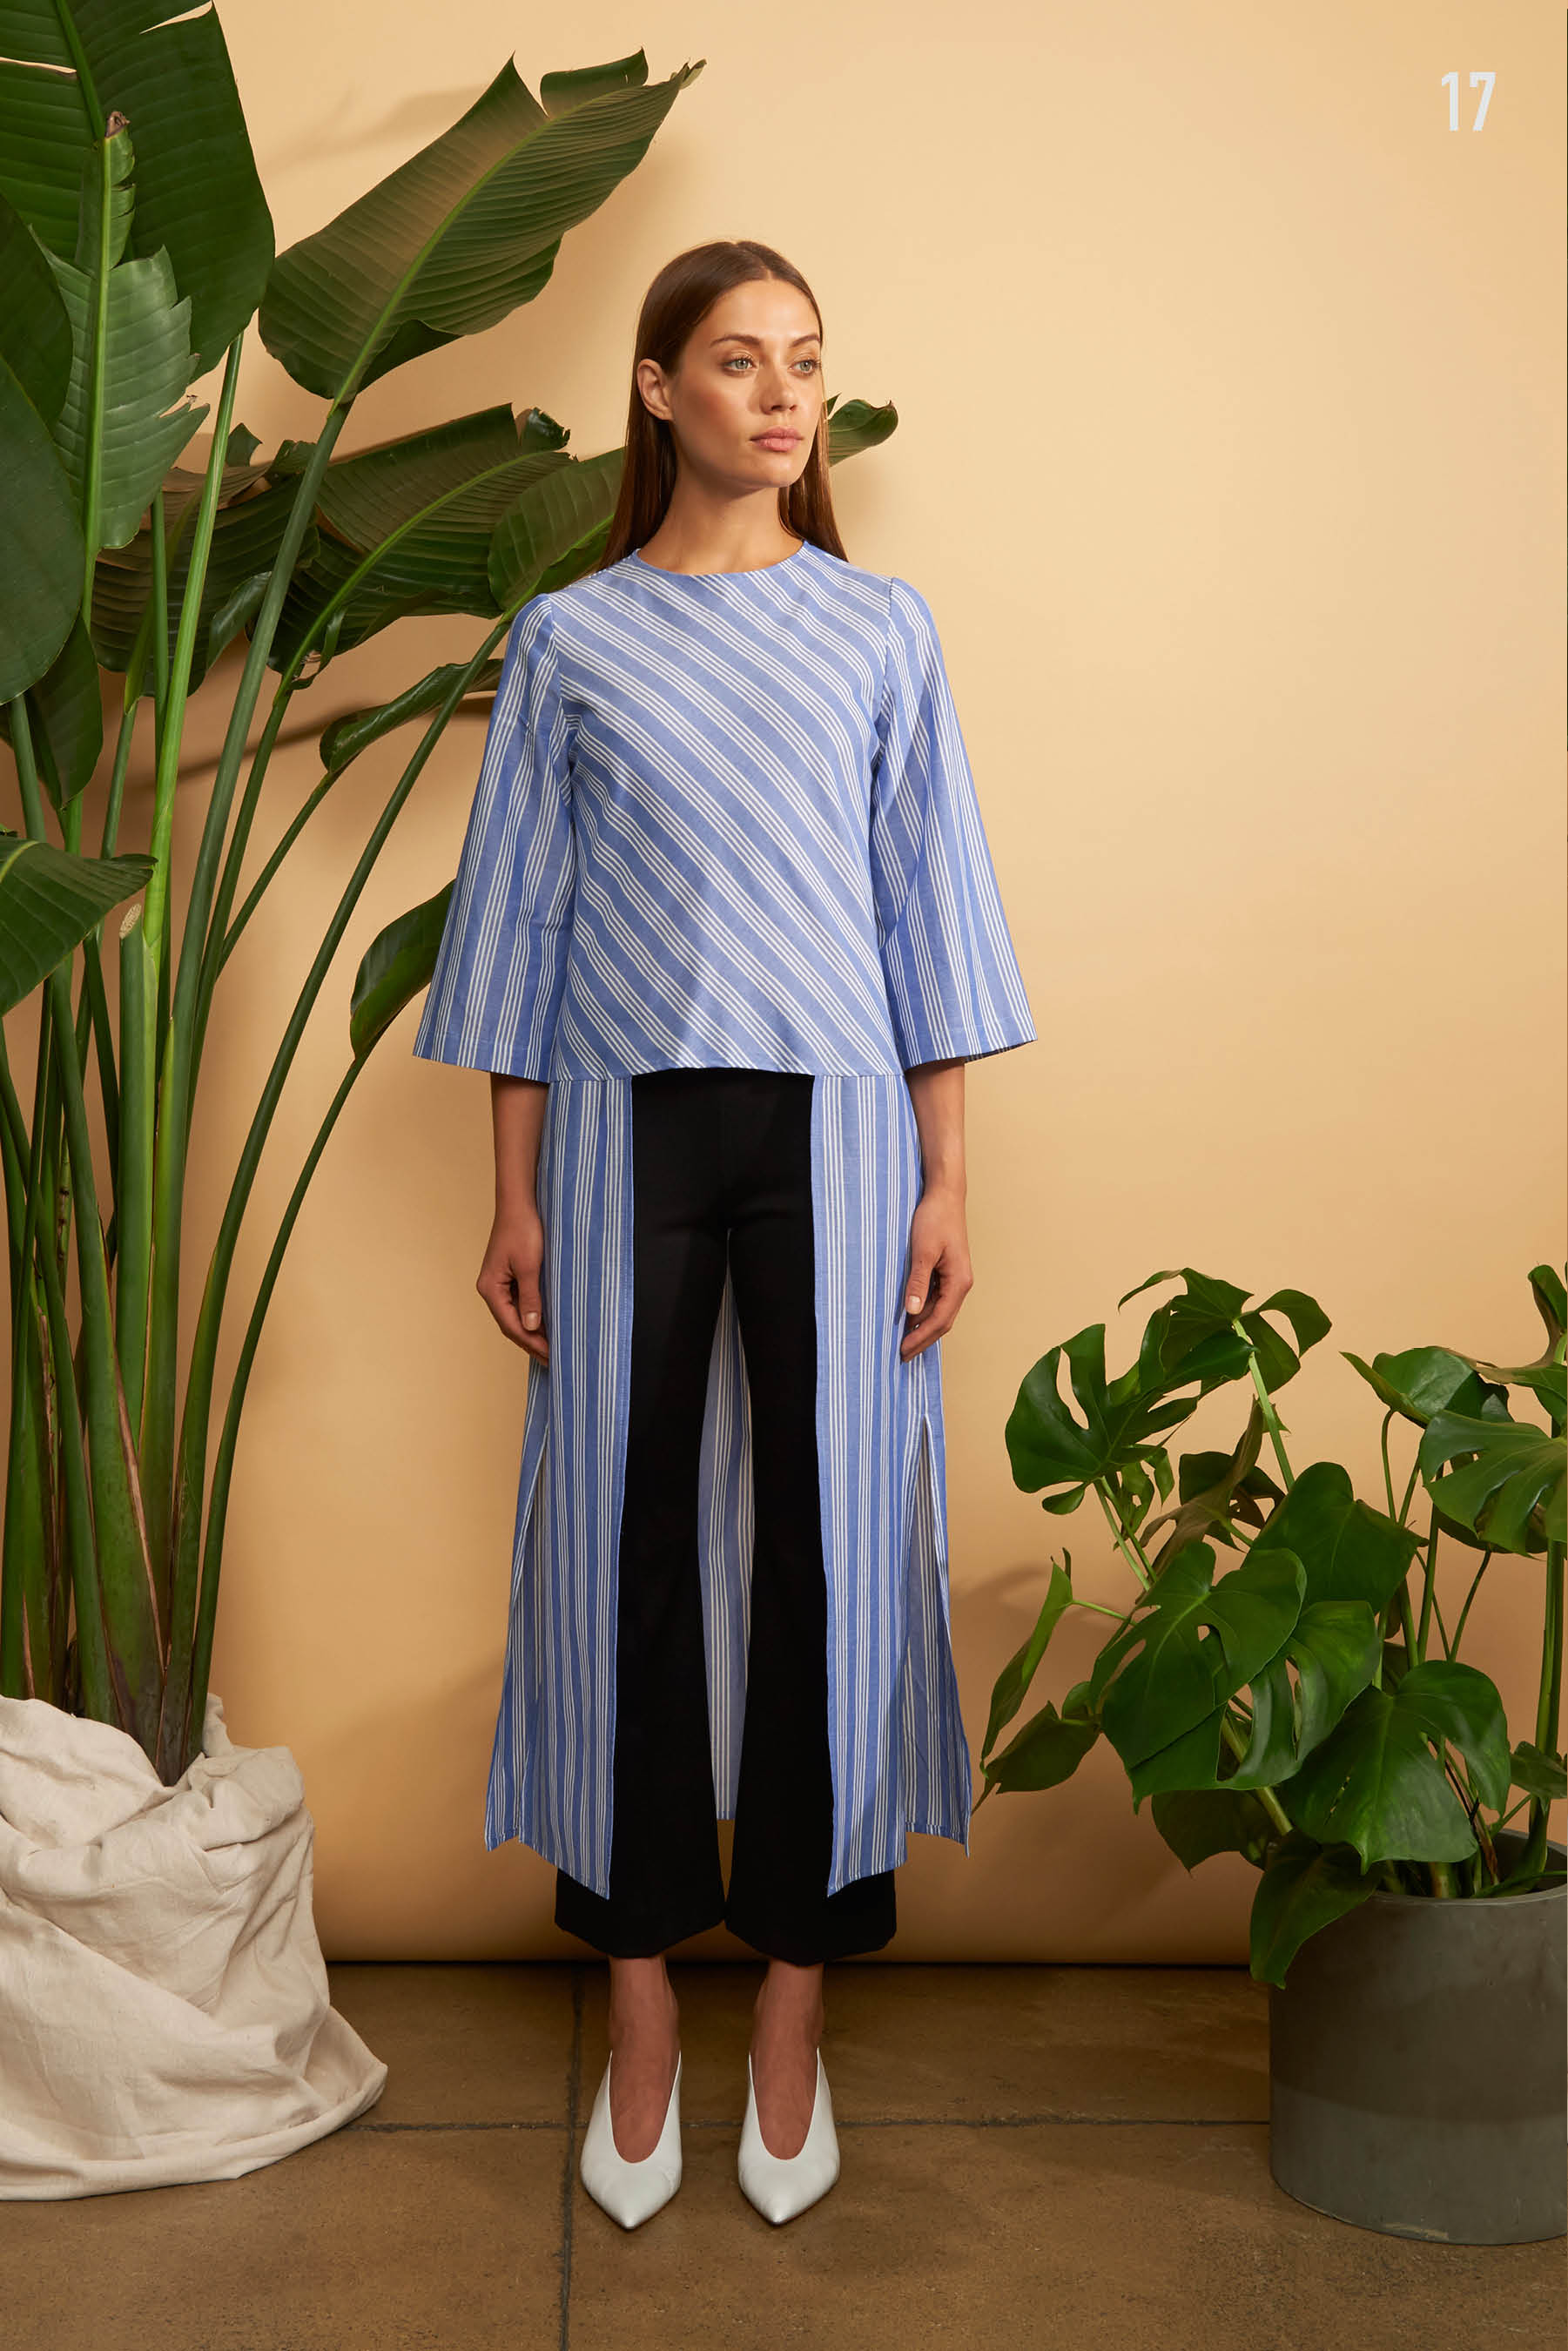 Kal Rieman Spring 2018 Lookbook Look 17